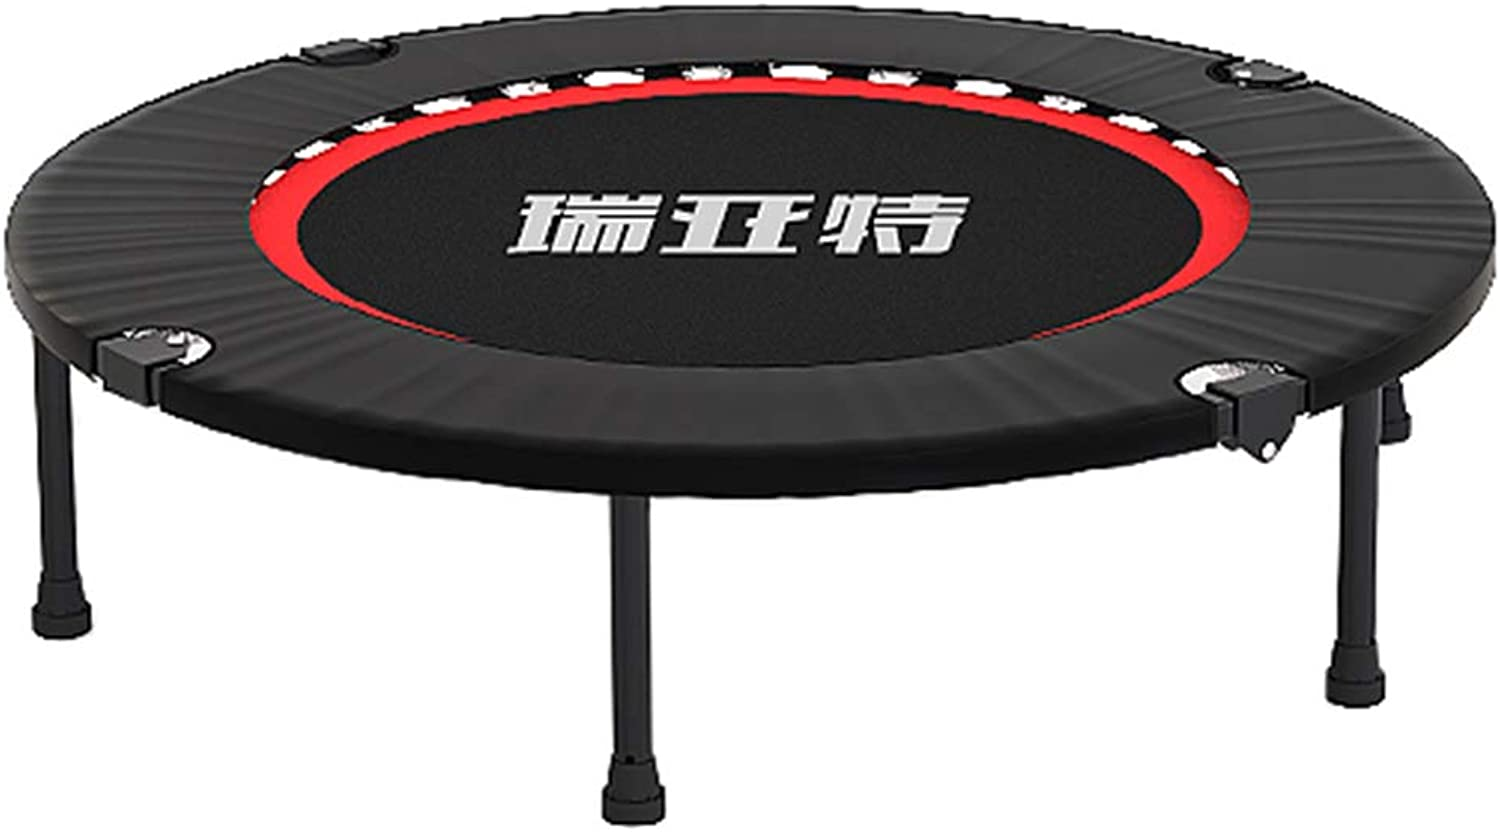 LXLA - Mini Foldable Trampoline 40 Inch, Black Fitness Bouncer for Adults Kids - Max Load 200KG